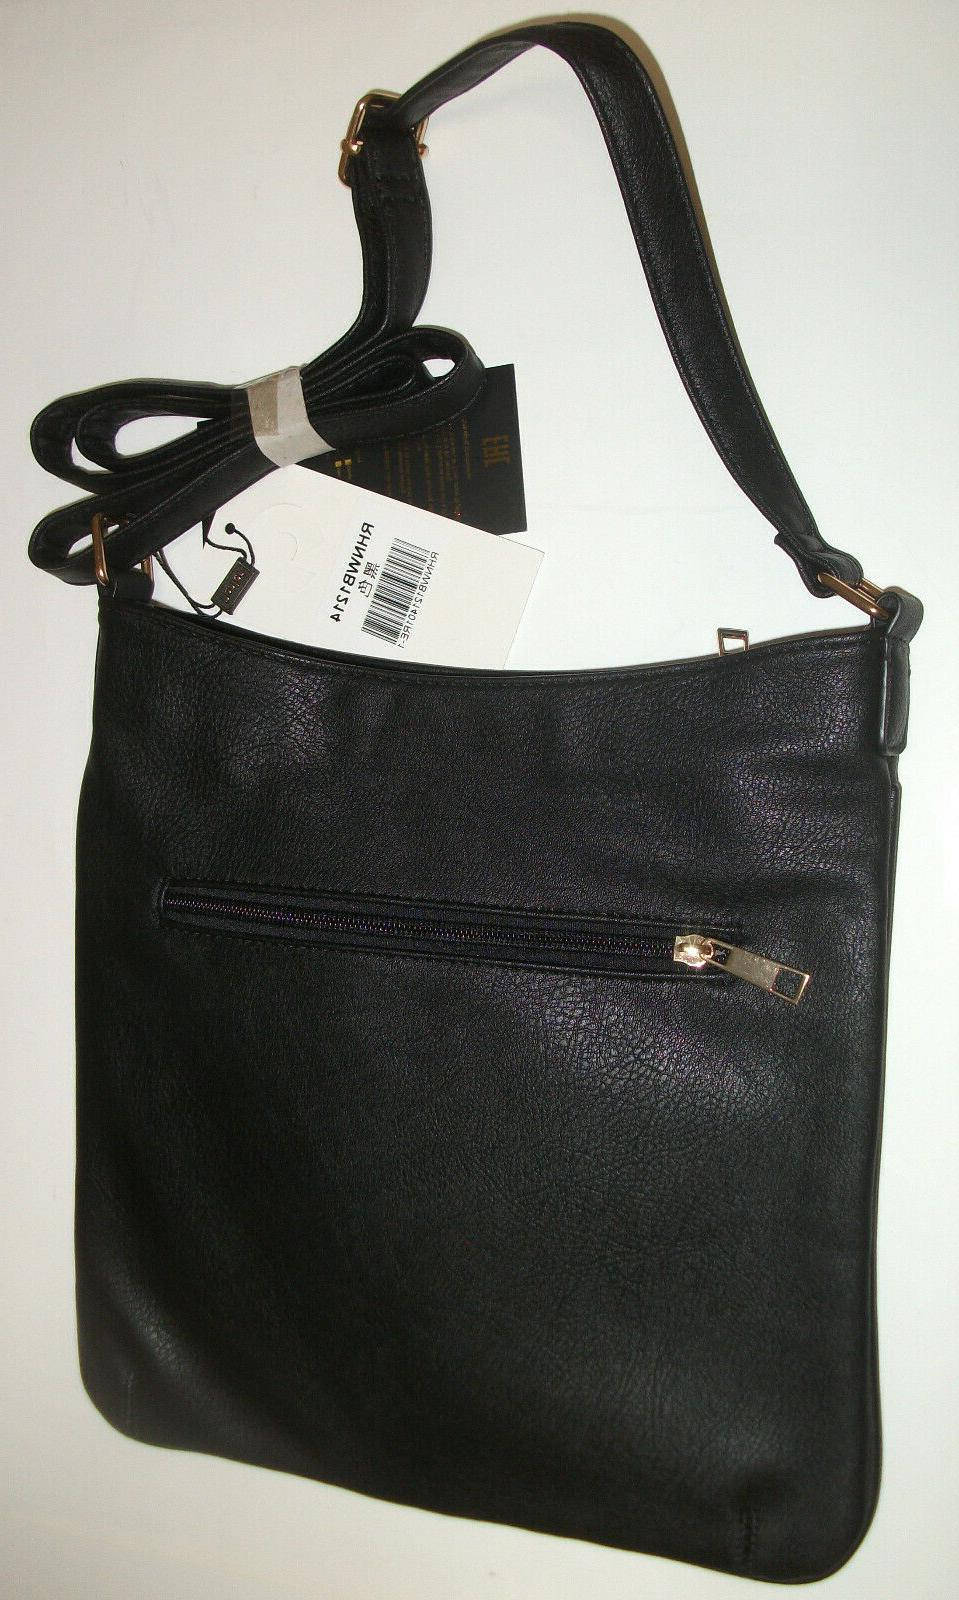 MESSENGER BAG HANDBAGS DESIGNER BLACK